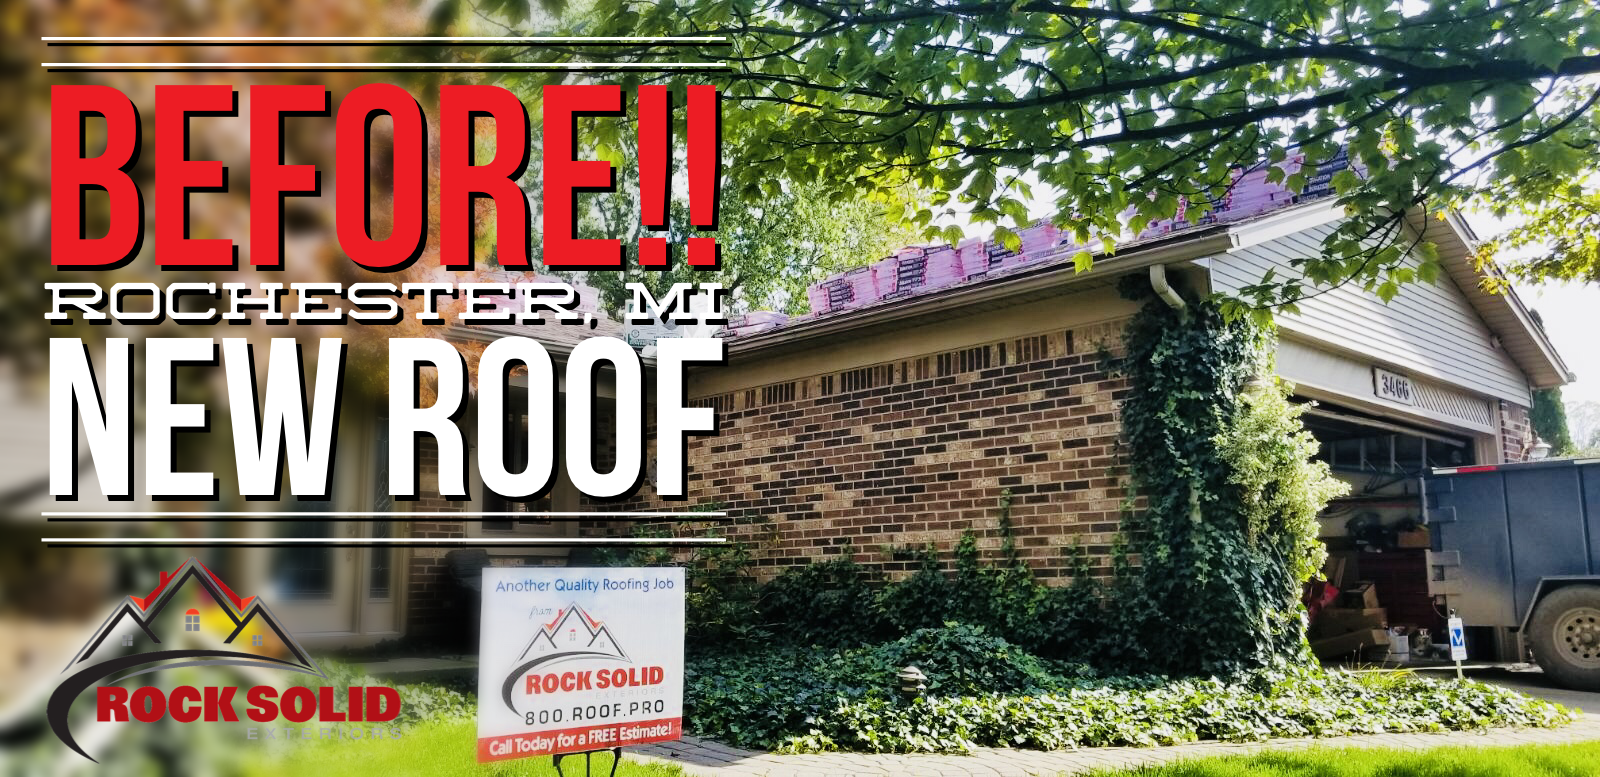 Rock Solid Exteriors - Roofers and Siding Contractors image 42